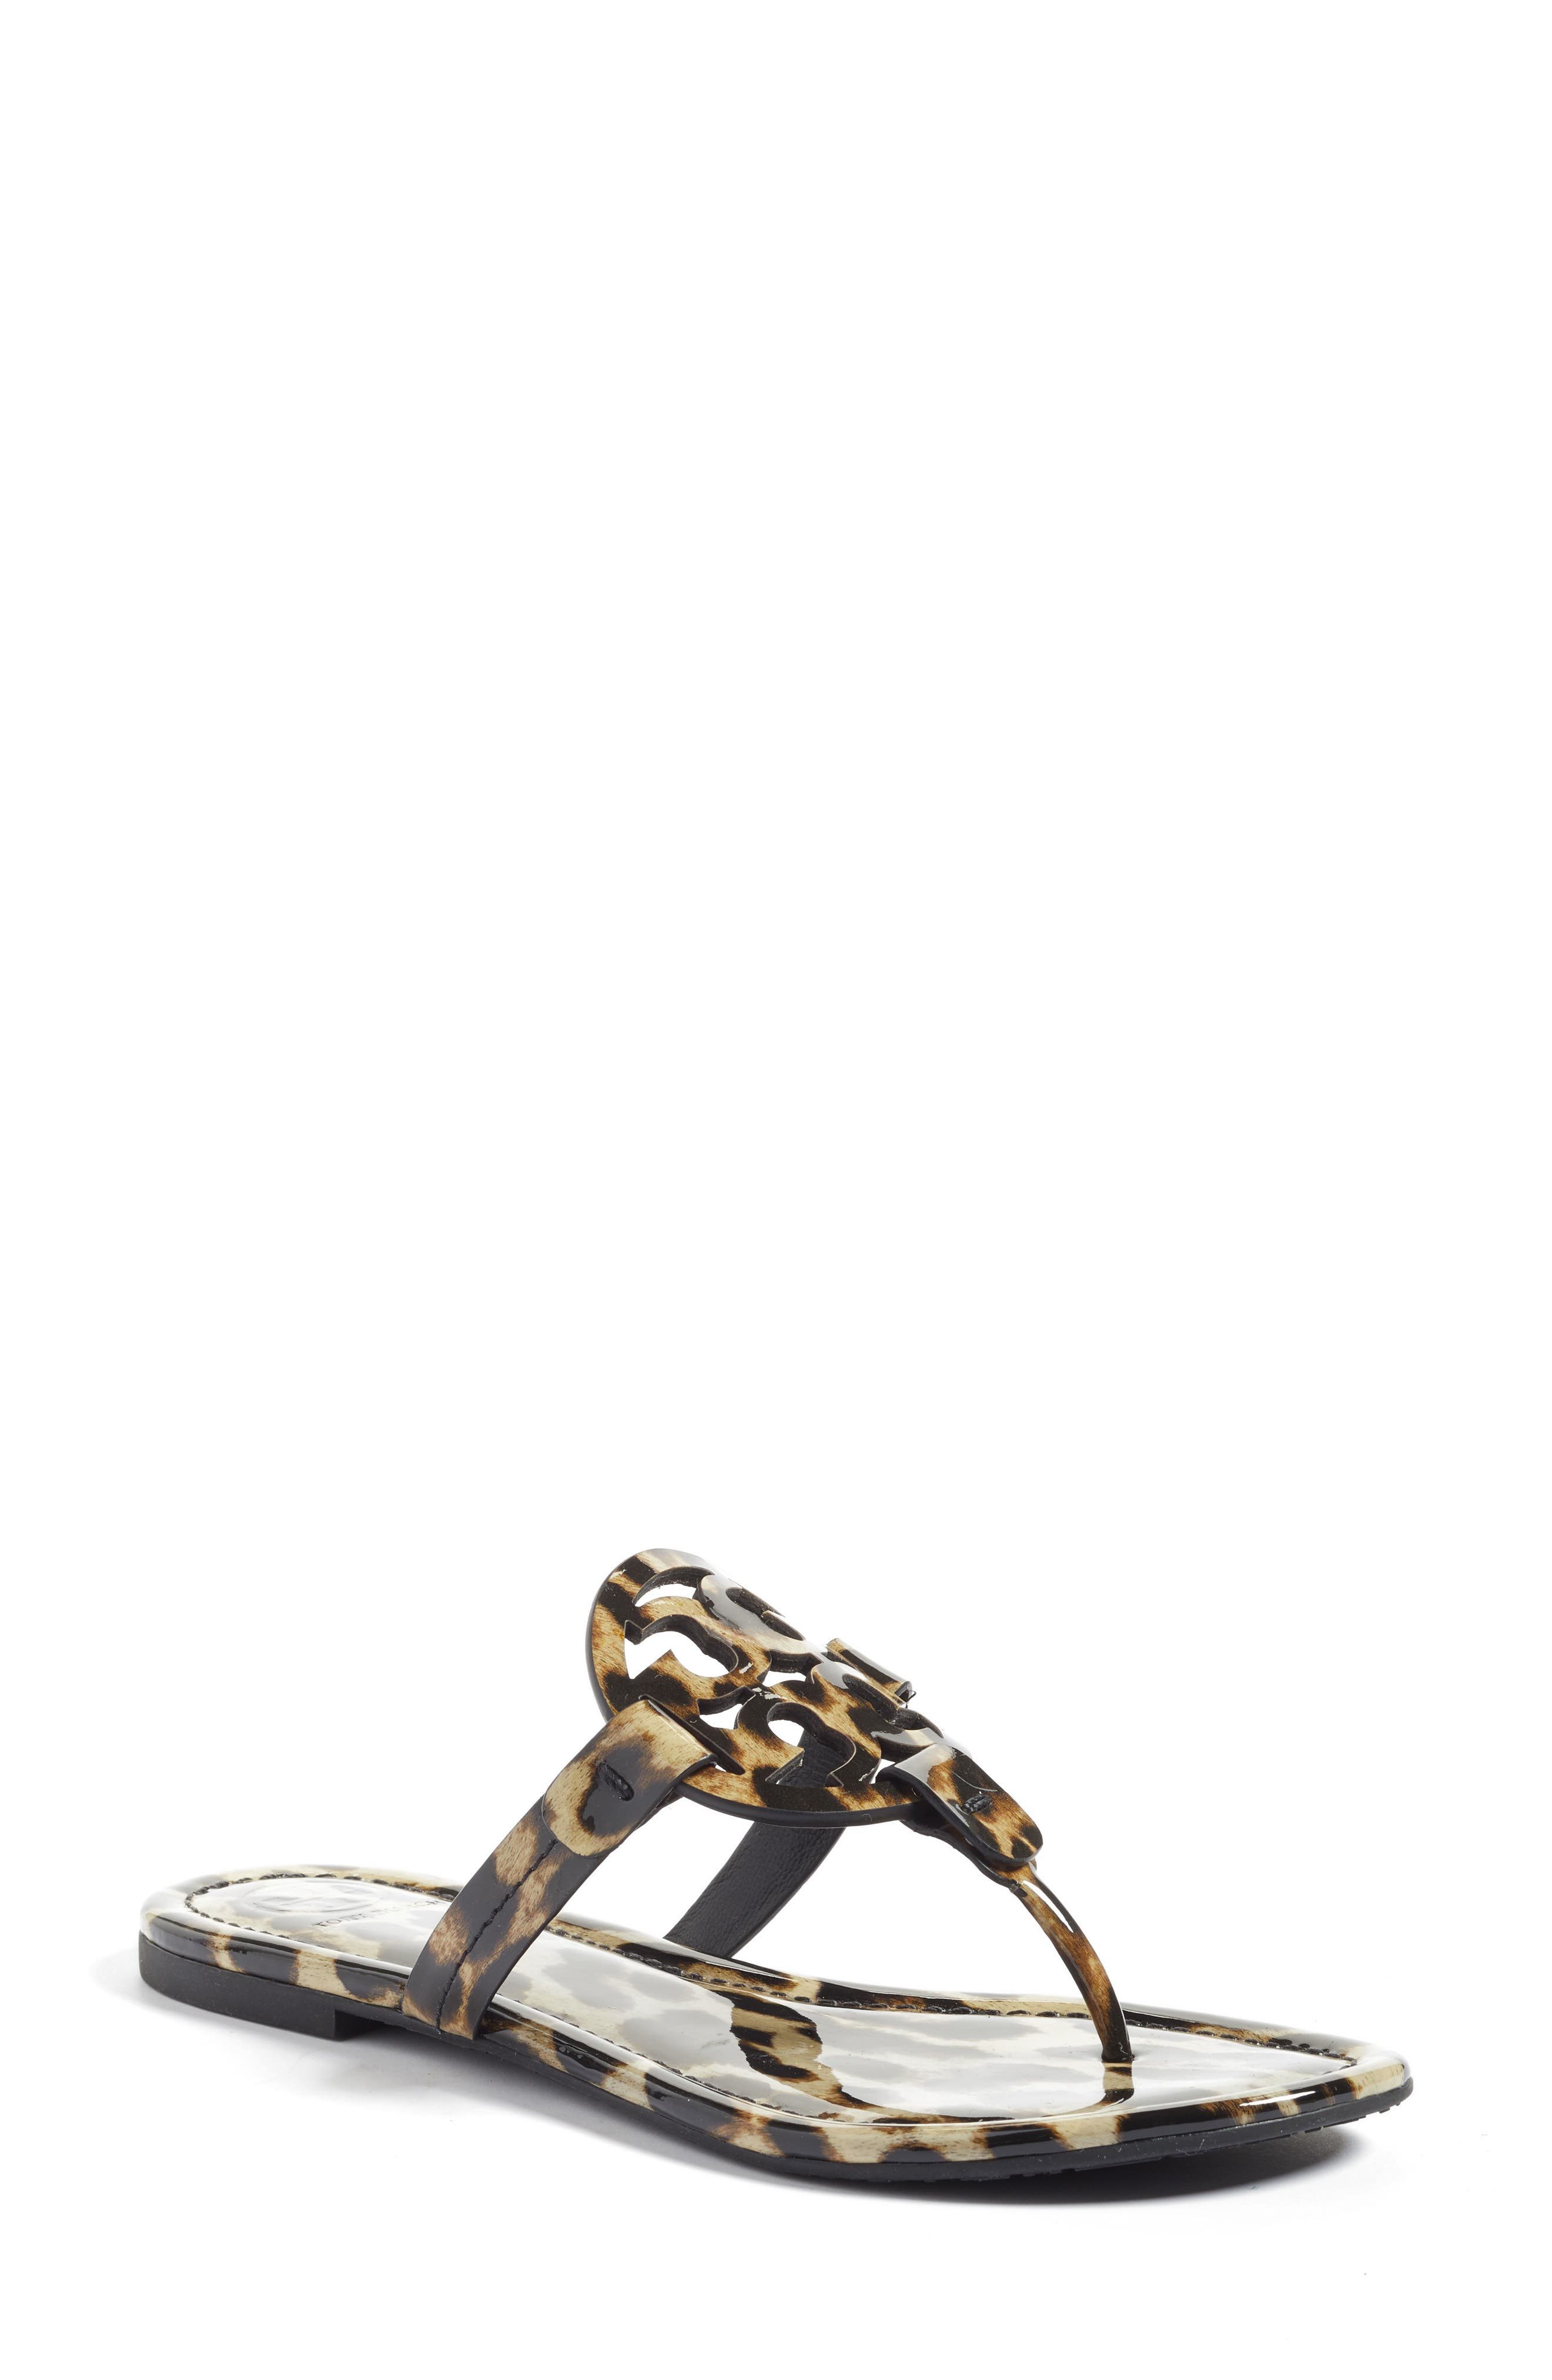 Alternate Image 1 Selected - Tory Burch 'Miller' Flip Flop (Women)